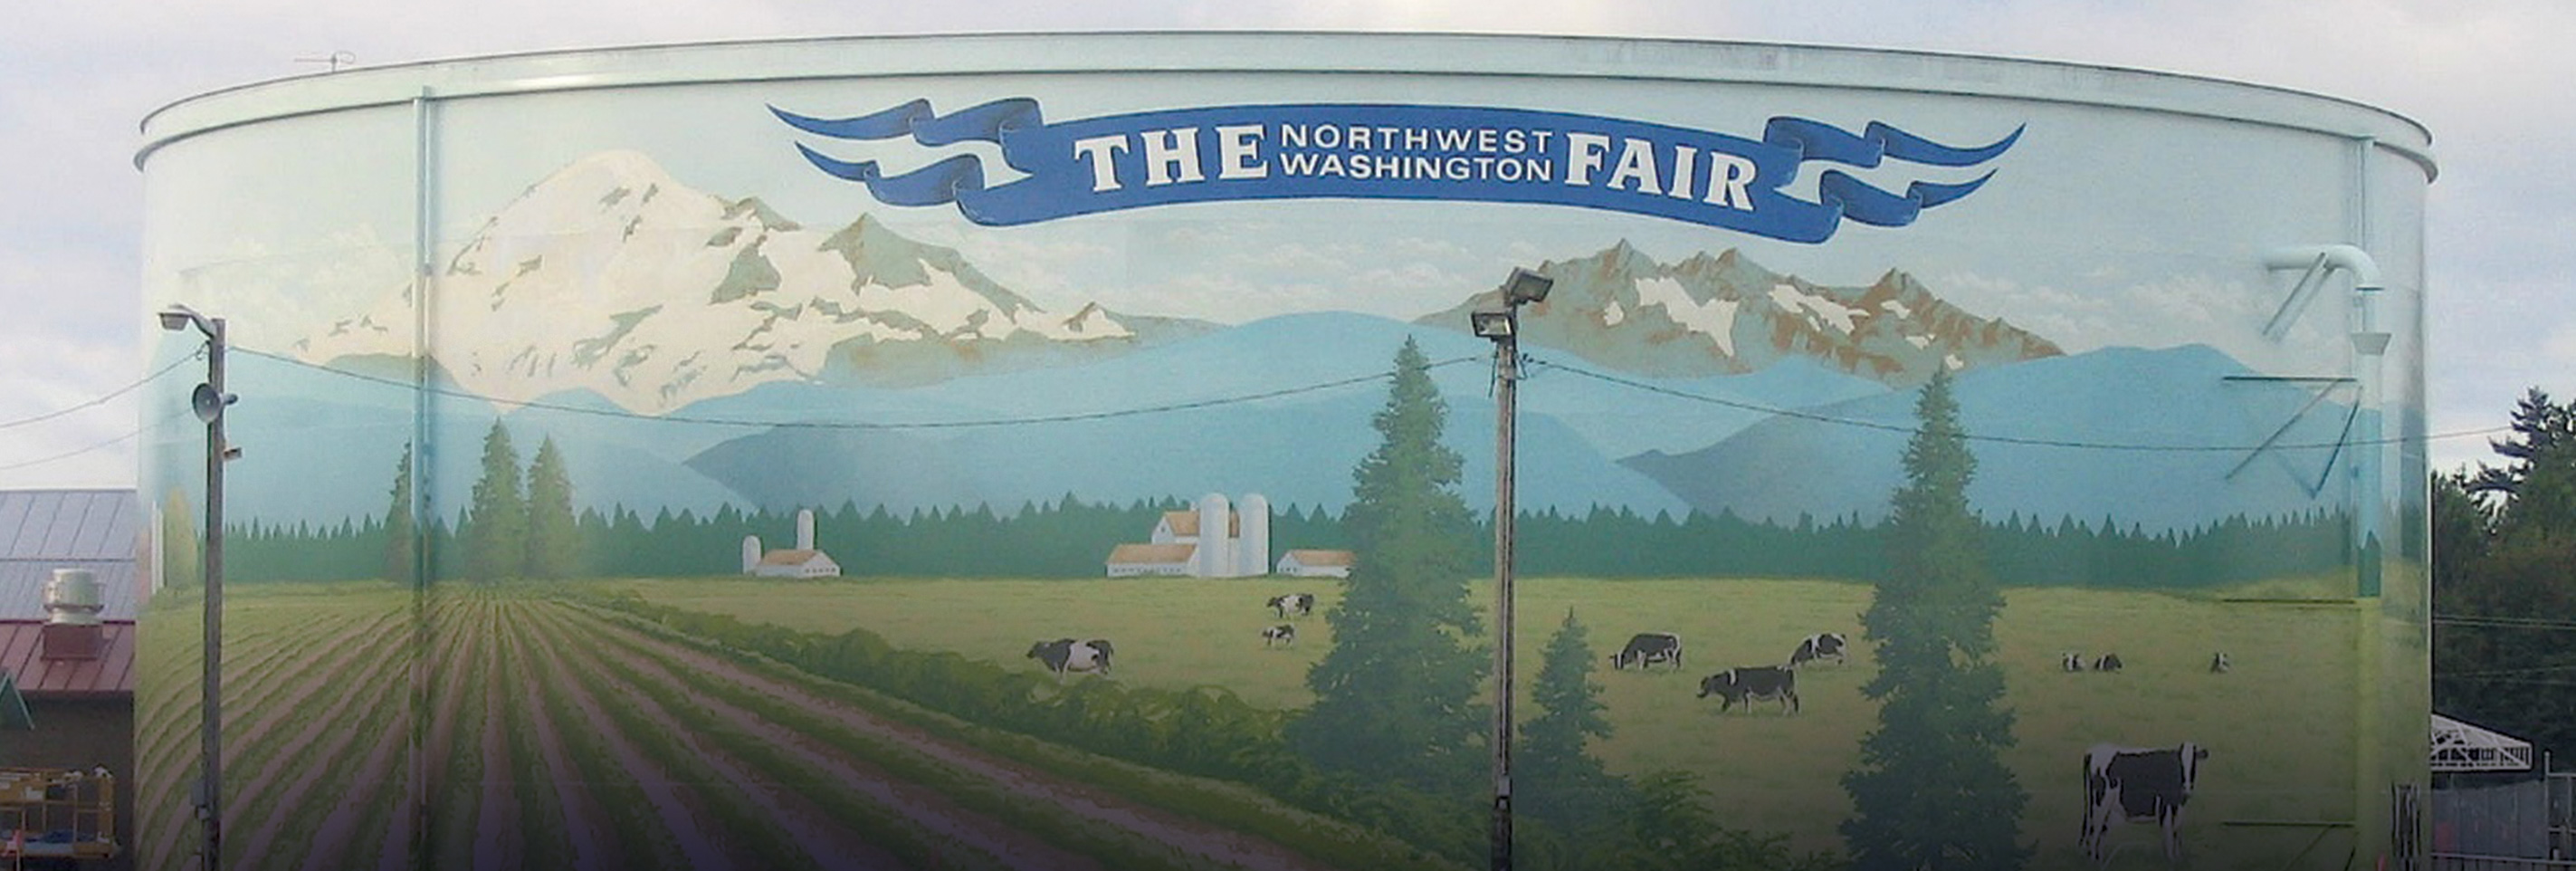 The Goetzinger brothers are masters of public water tank murals. Their special touch has created a new landmark Lynden, Washington.